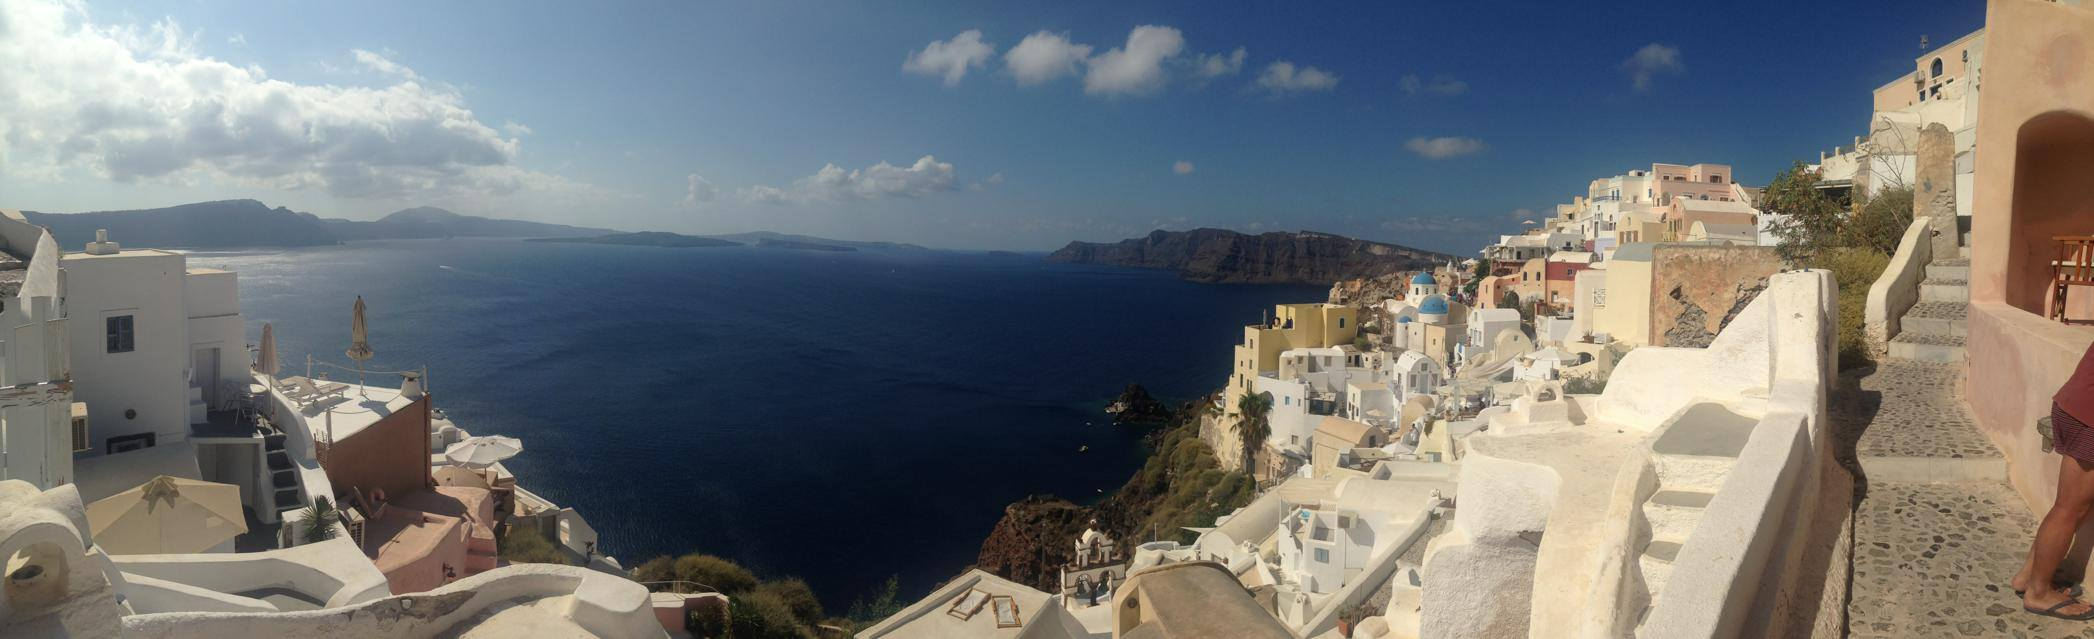 The beauty of Santorini!